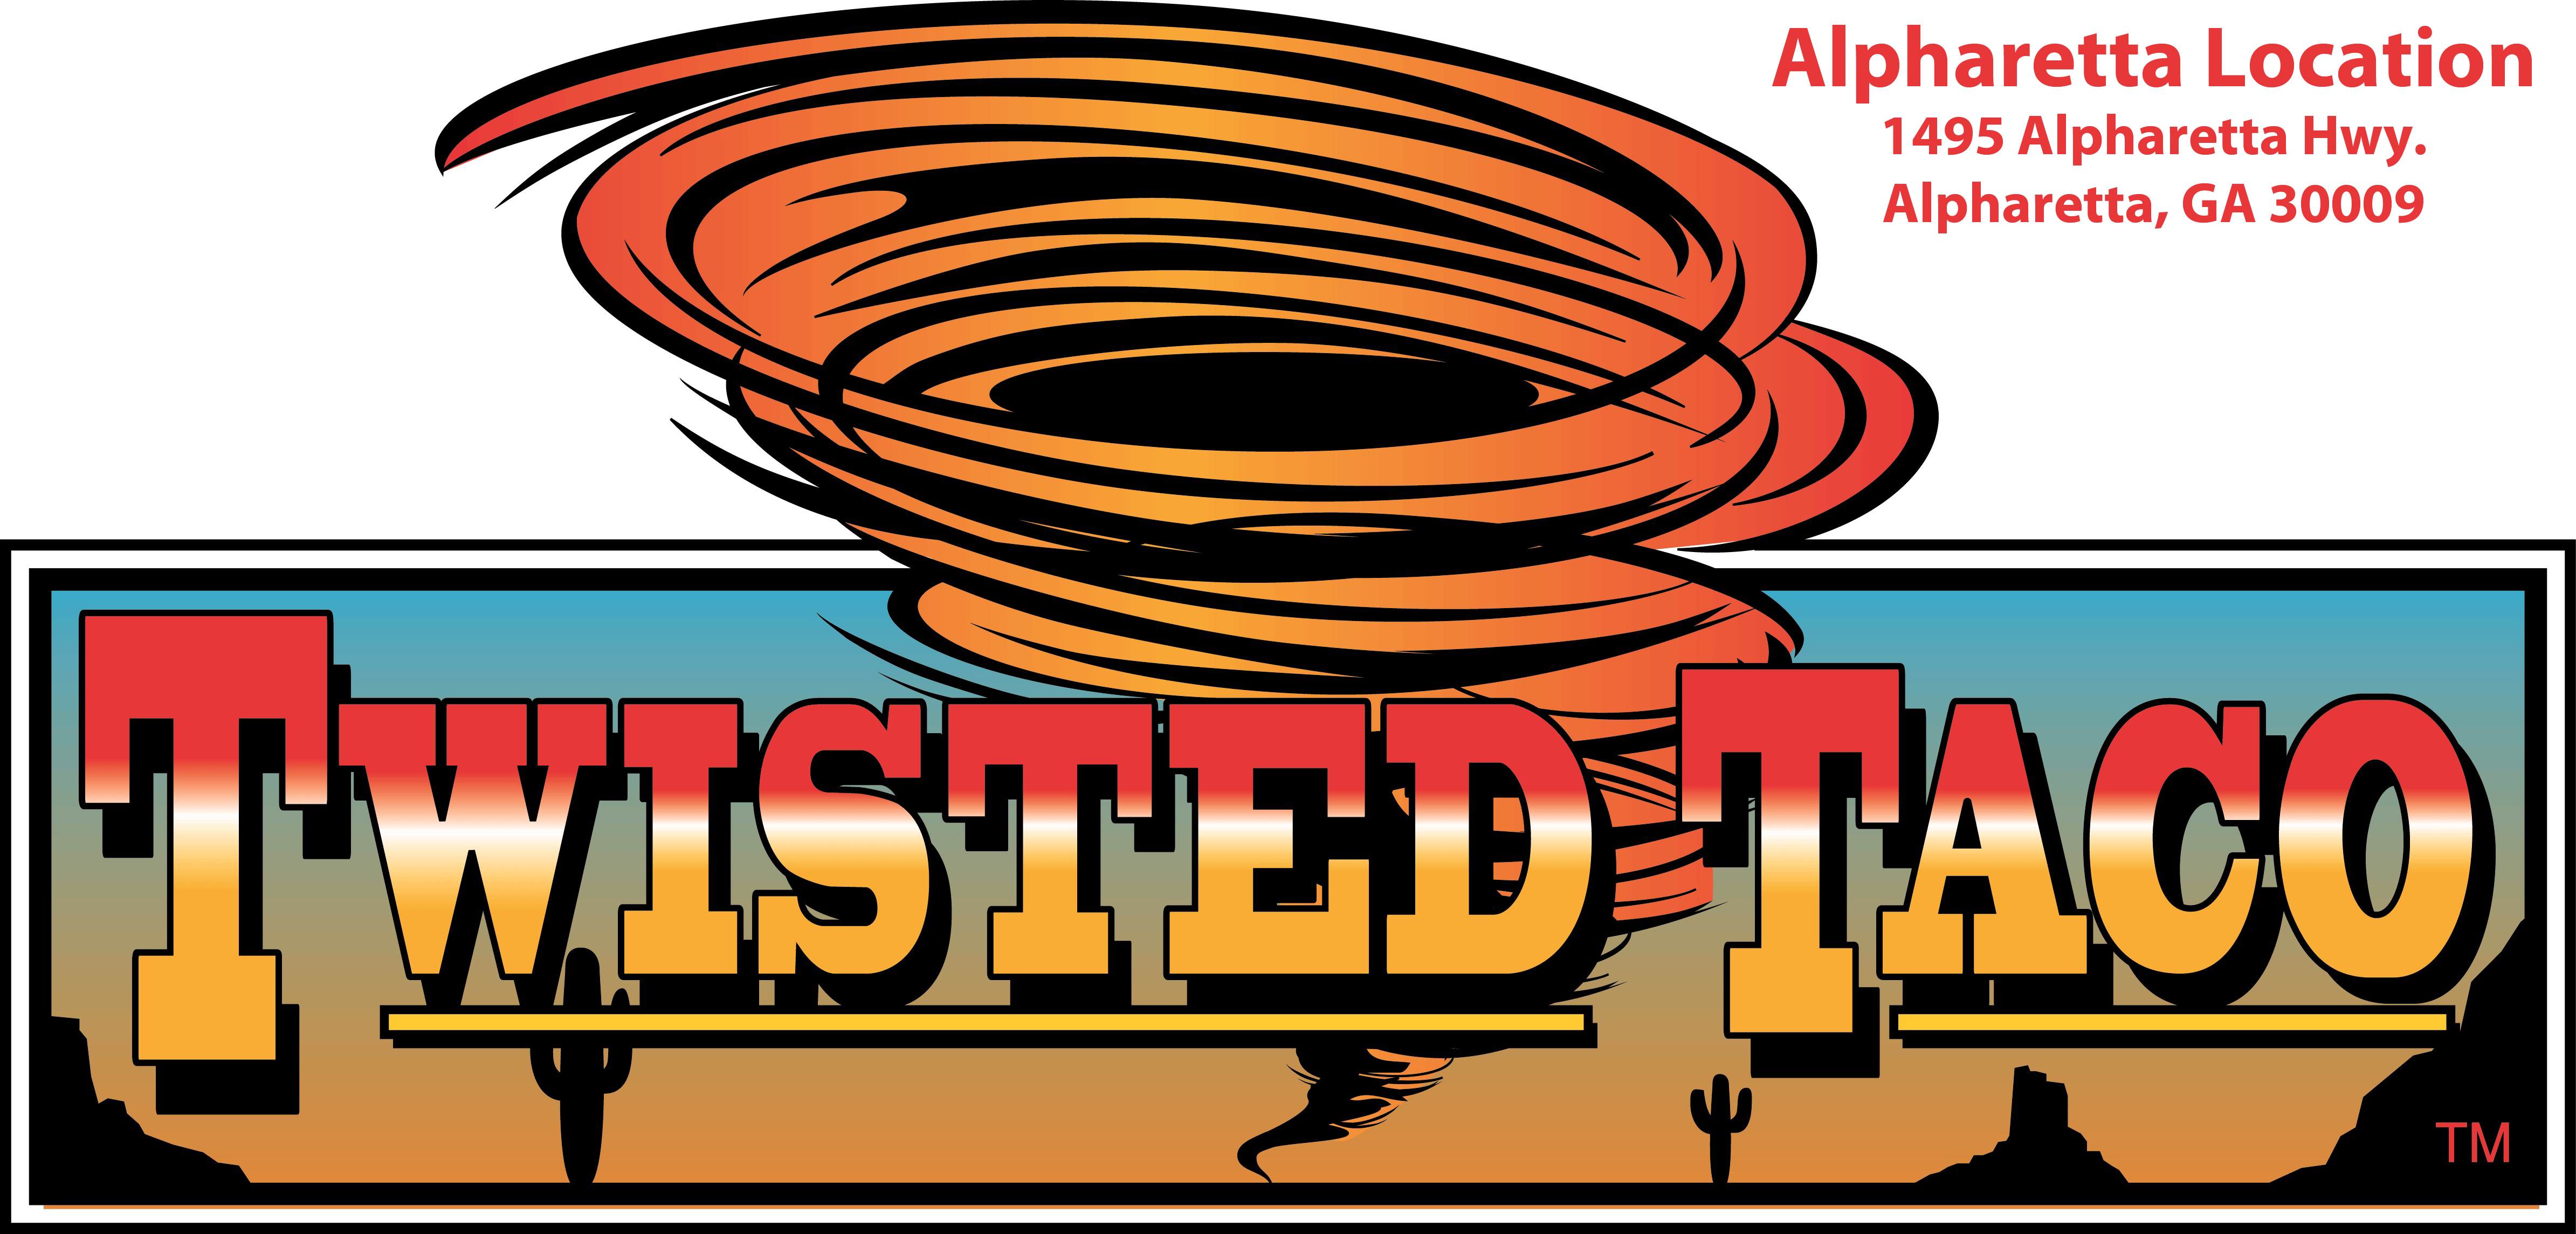 Alpharetta - Twisted Taco